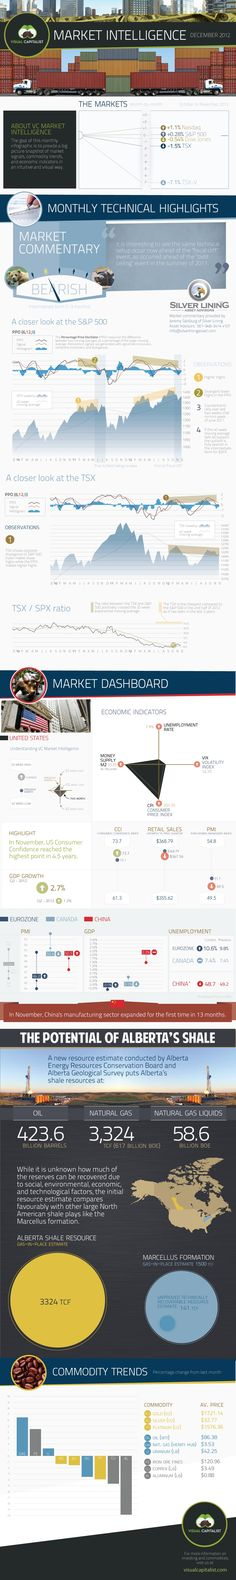 VC Market Intelligence is a new monthly infographic from Visual Capitalist that summarizes a macro view of the last month of markets